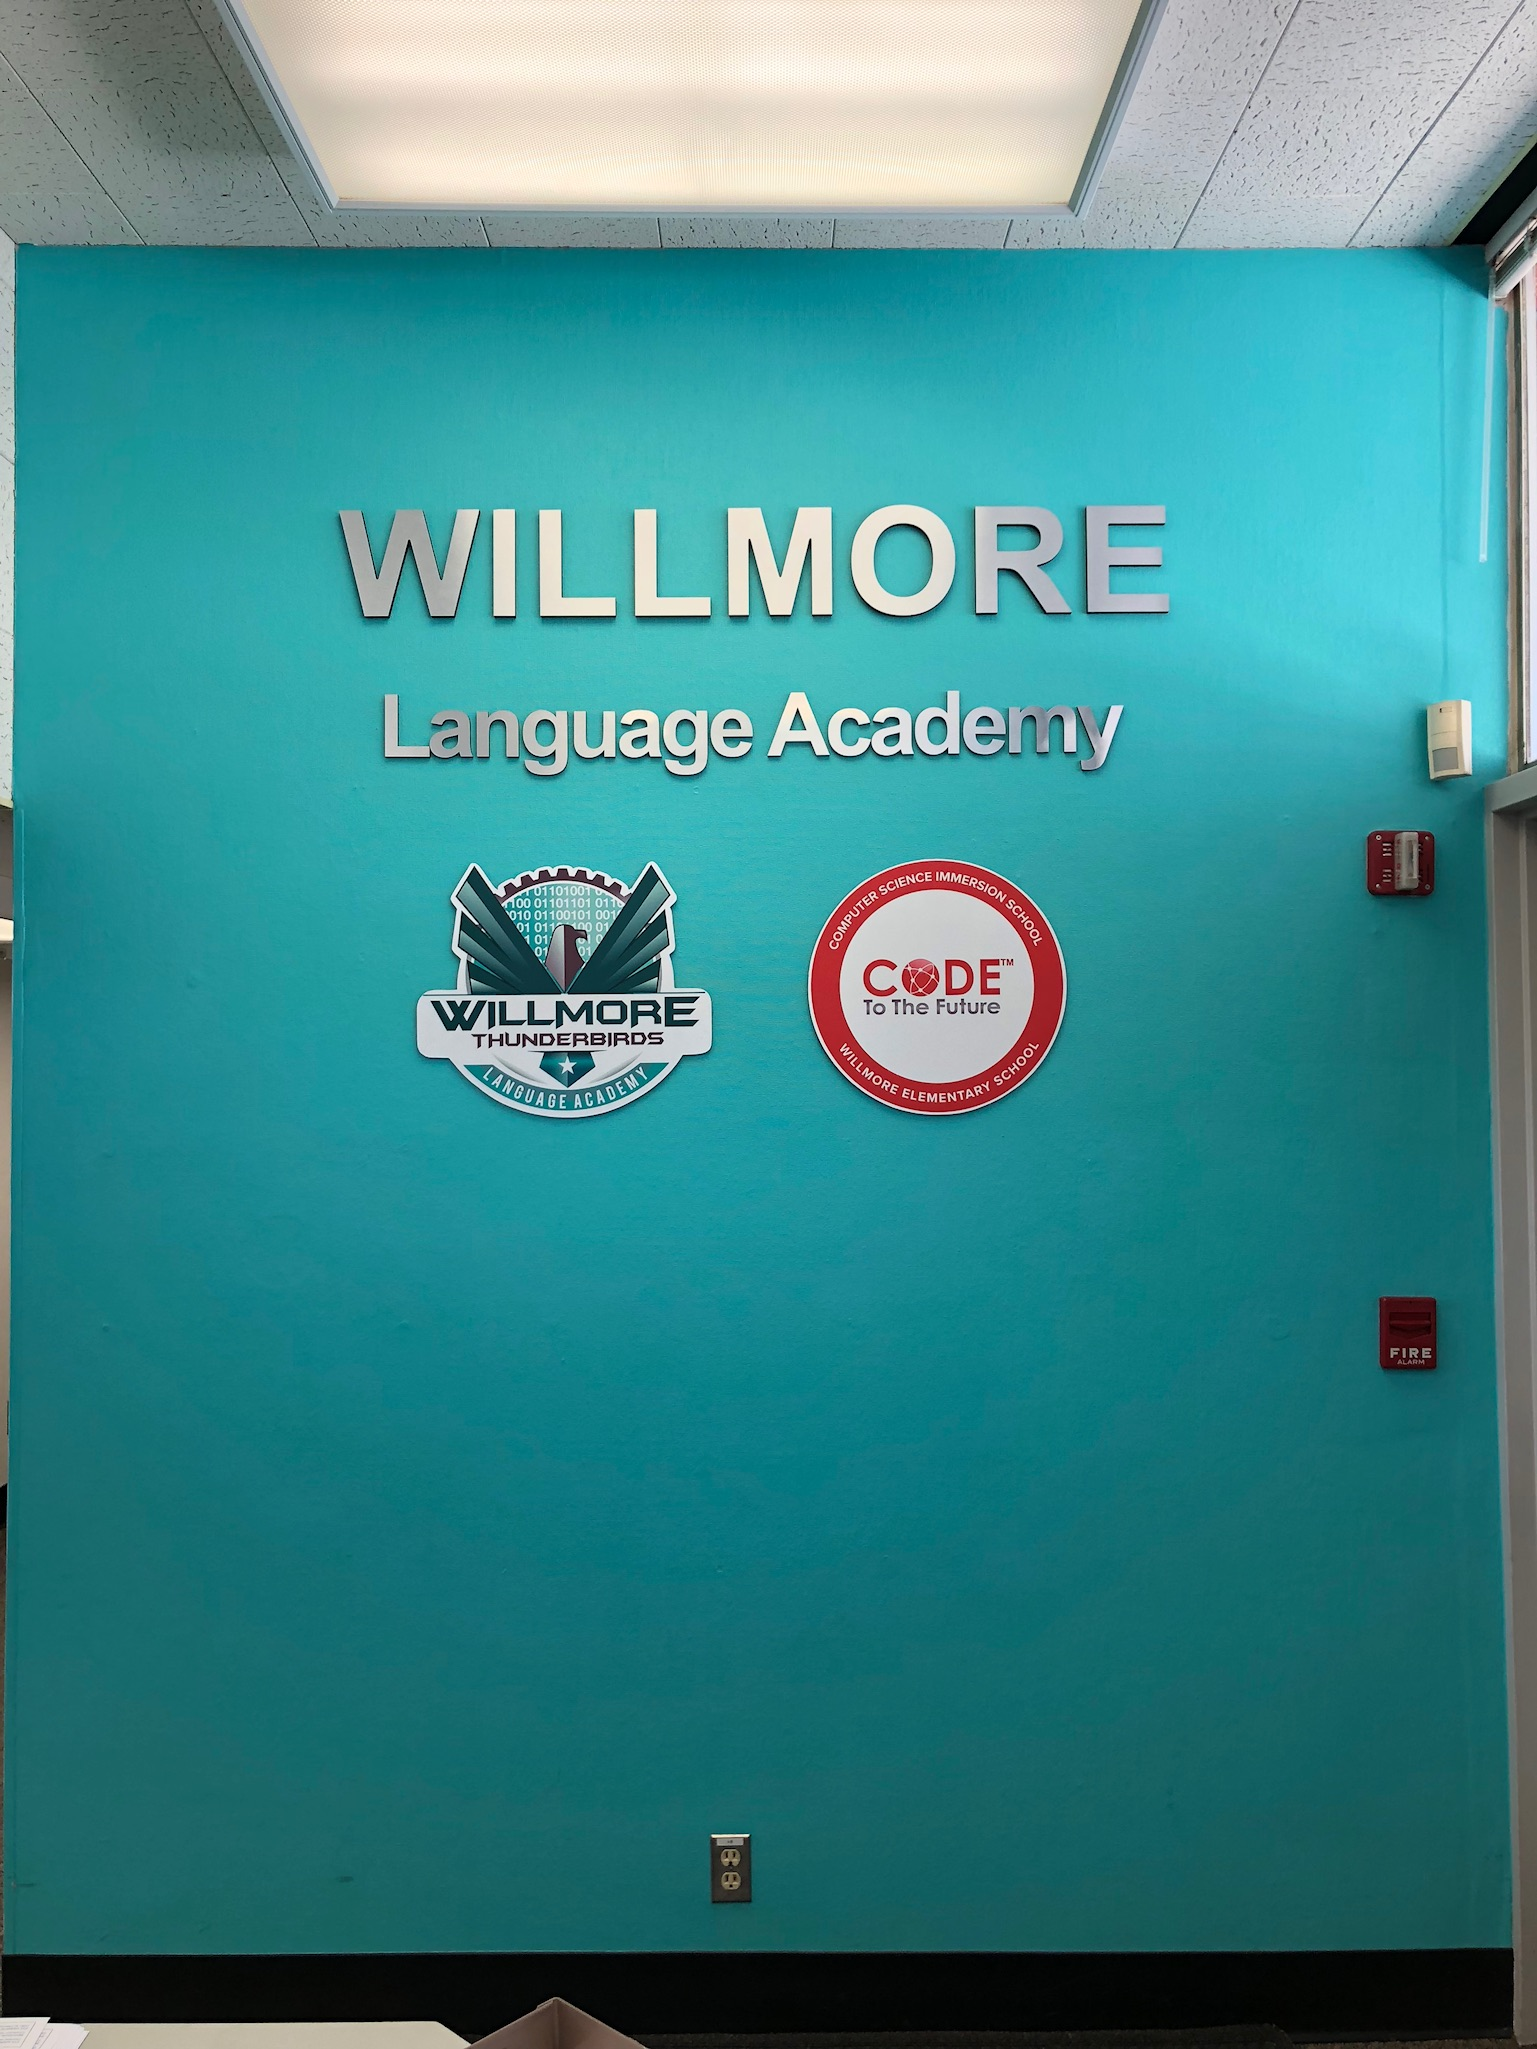 Willmore Language Academy